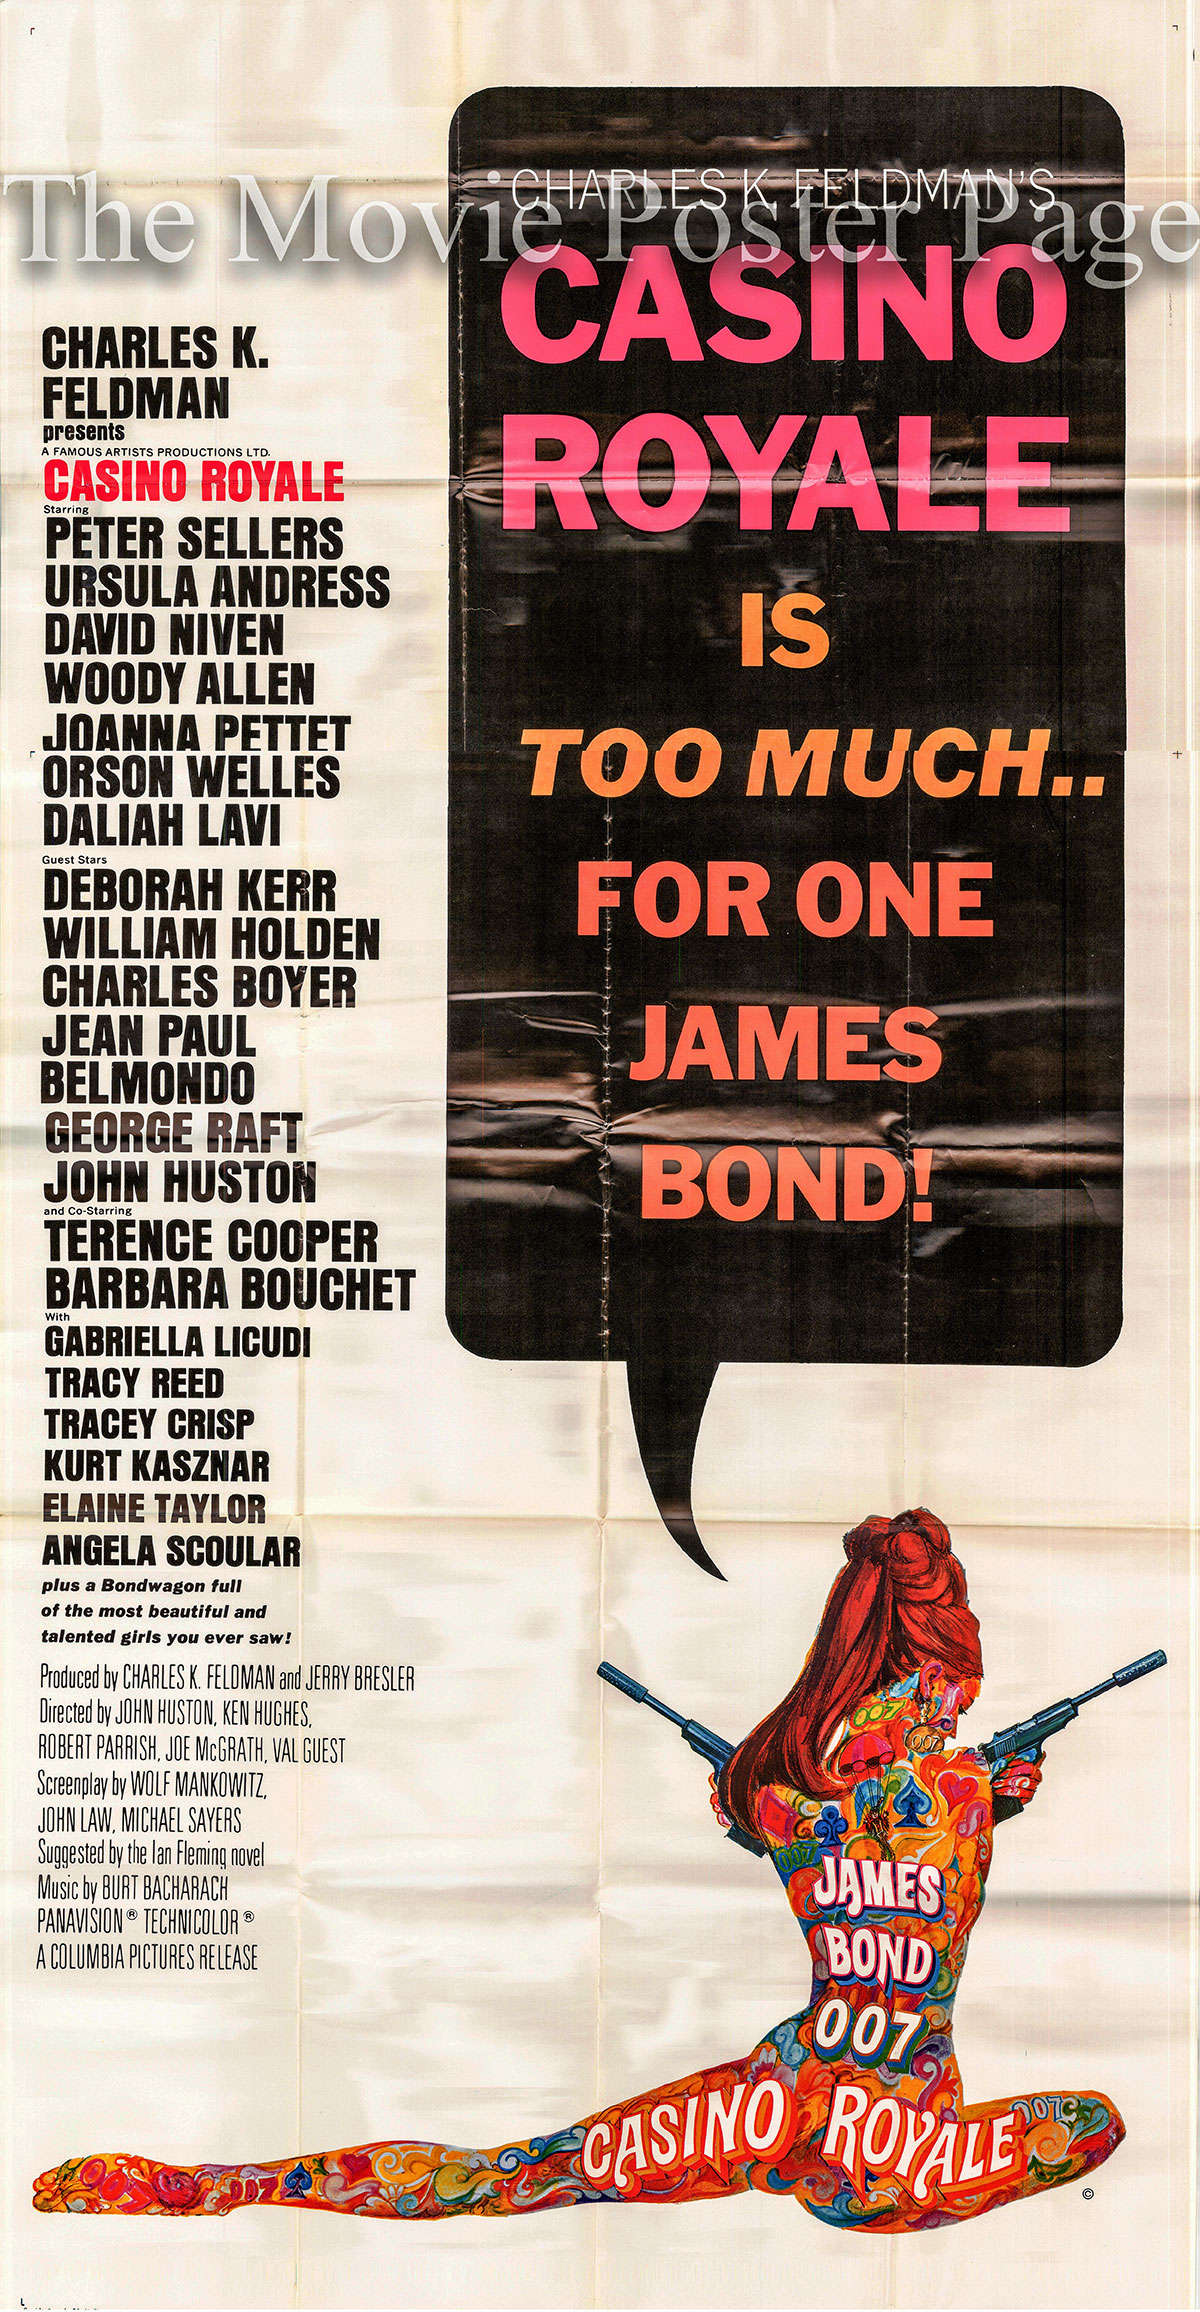 This is an image of a US 3-sheet promotional poster for the 1967 Ken Hughes and John Huston Film Casino Royale, starring Woody Allen and Peter Sellers.